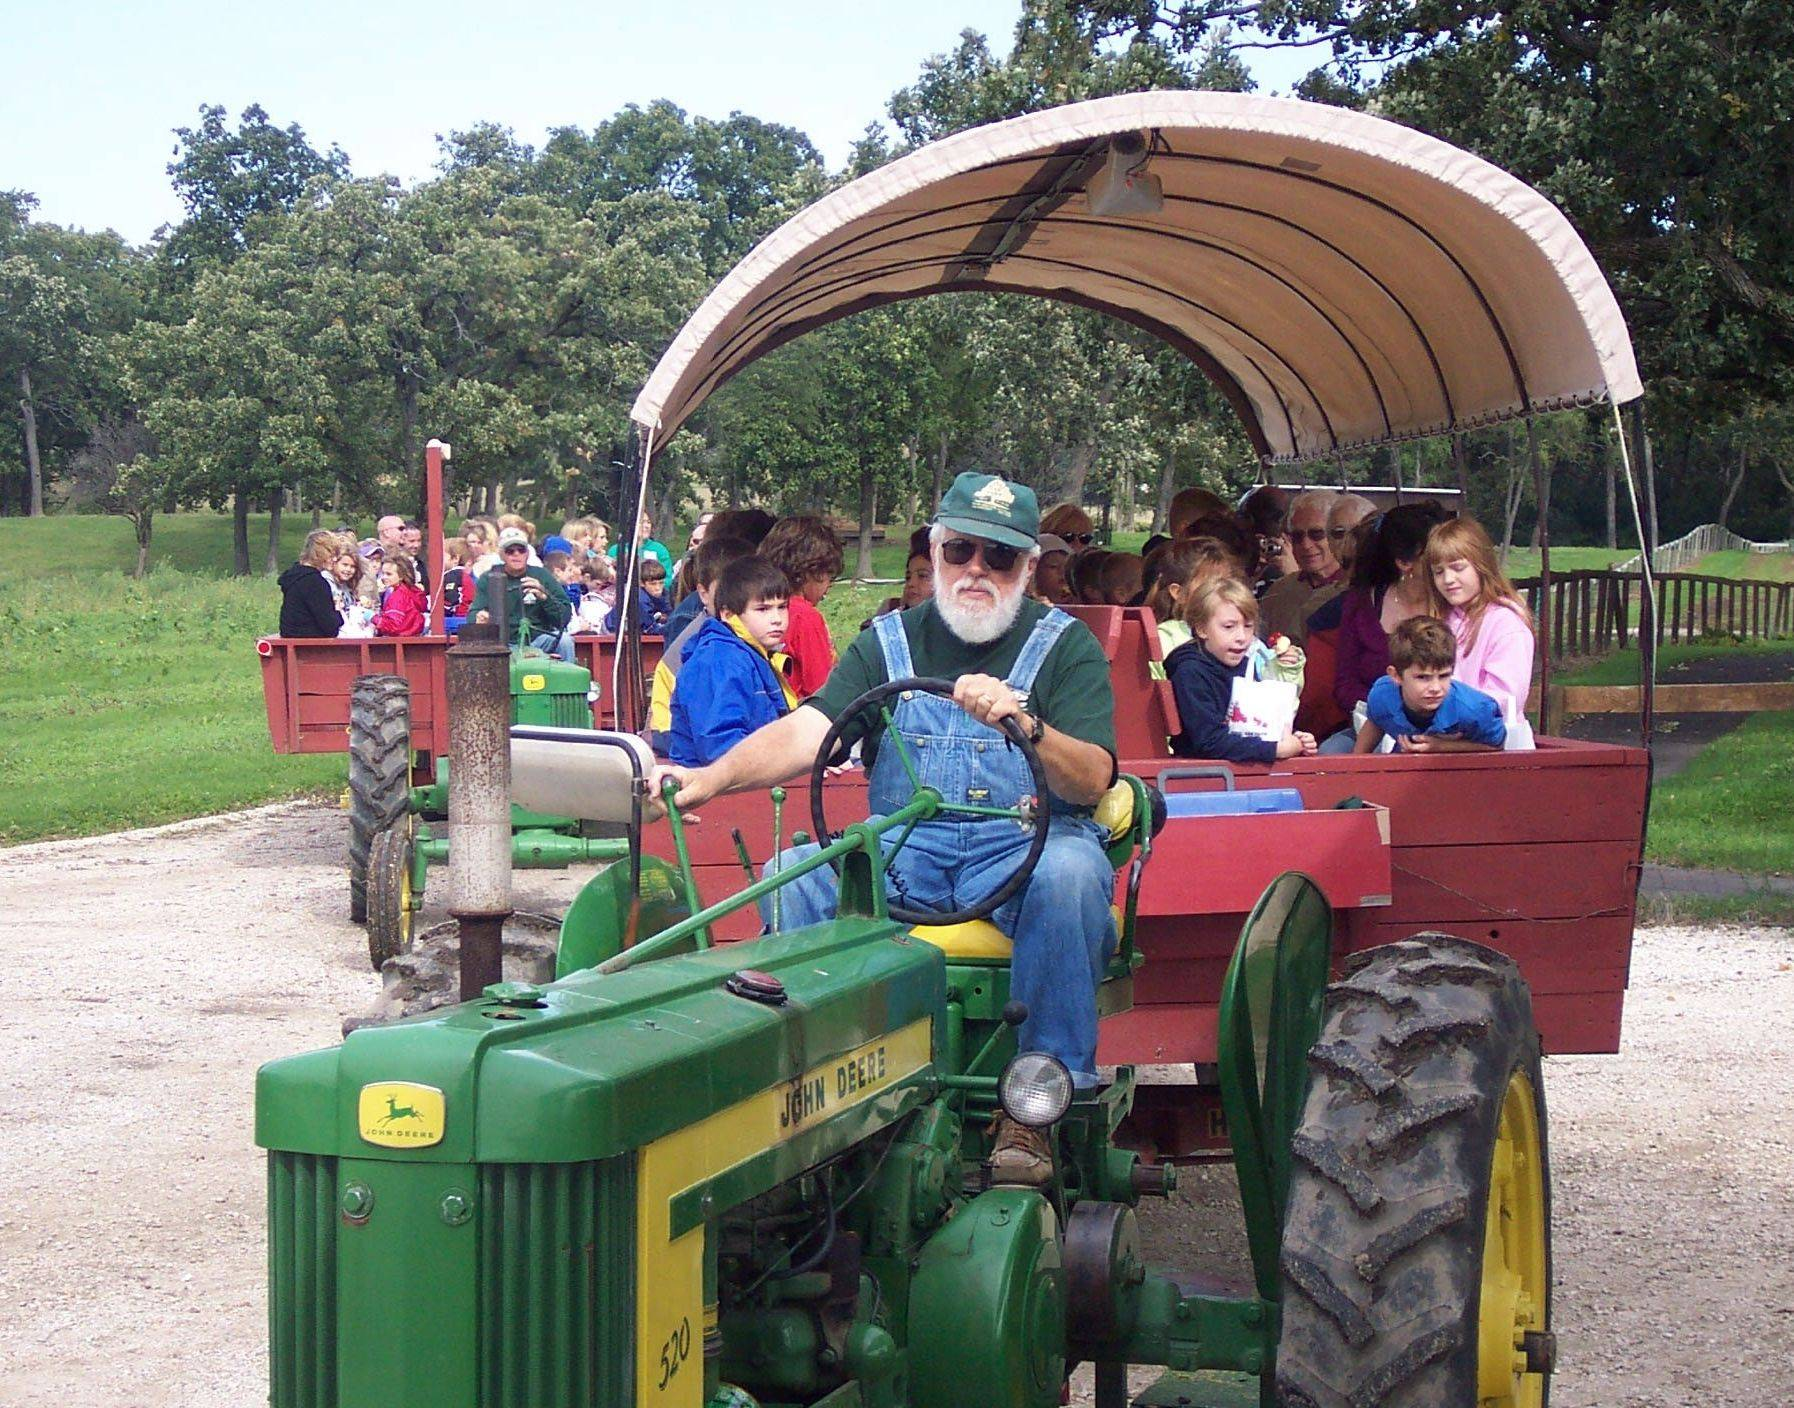 Families can enjoy rides and other amenities at Royal Oak Farm in Harvard.